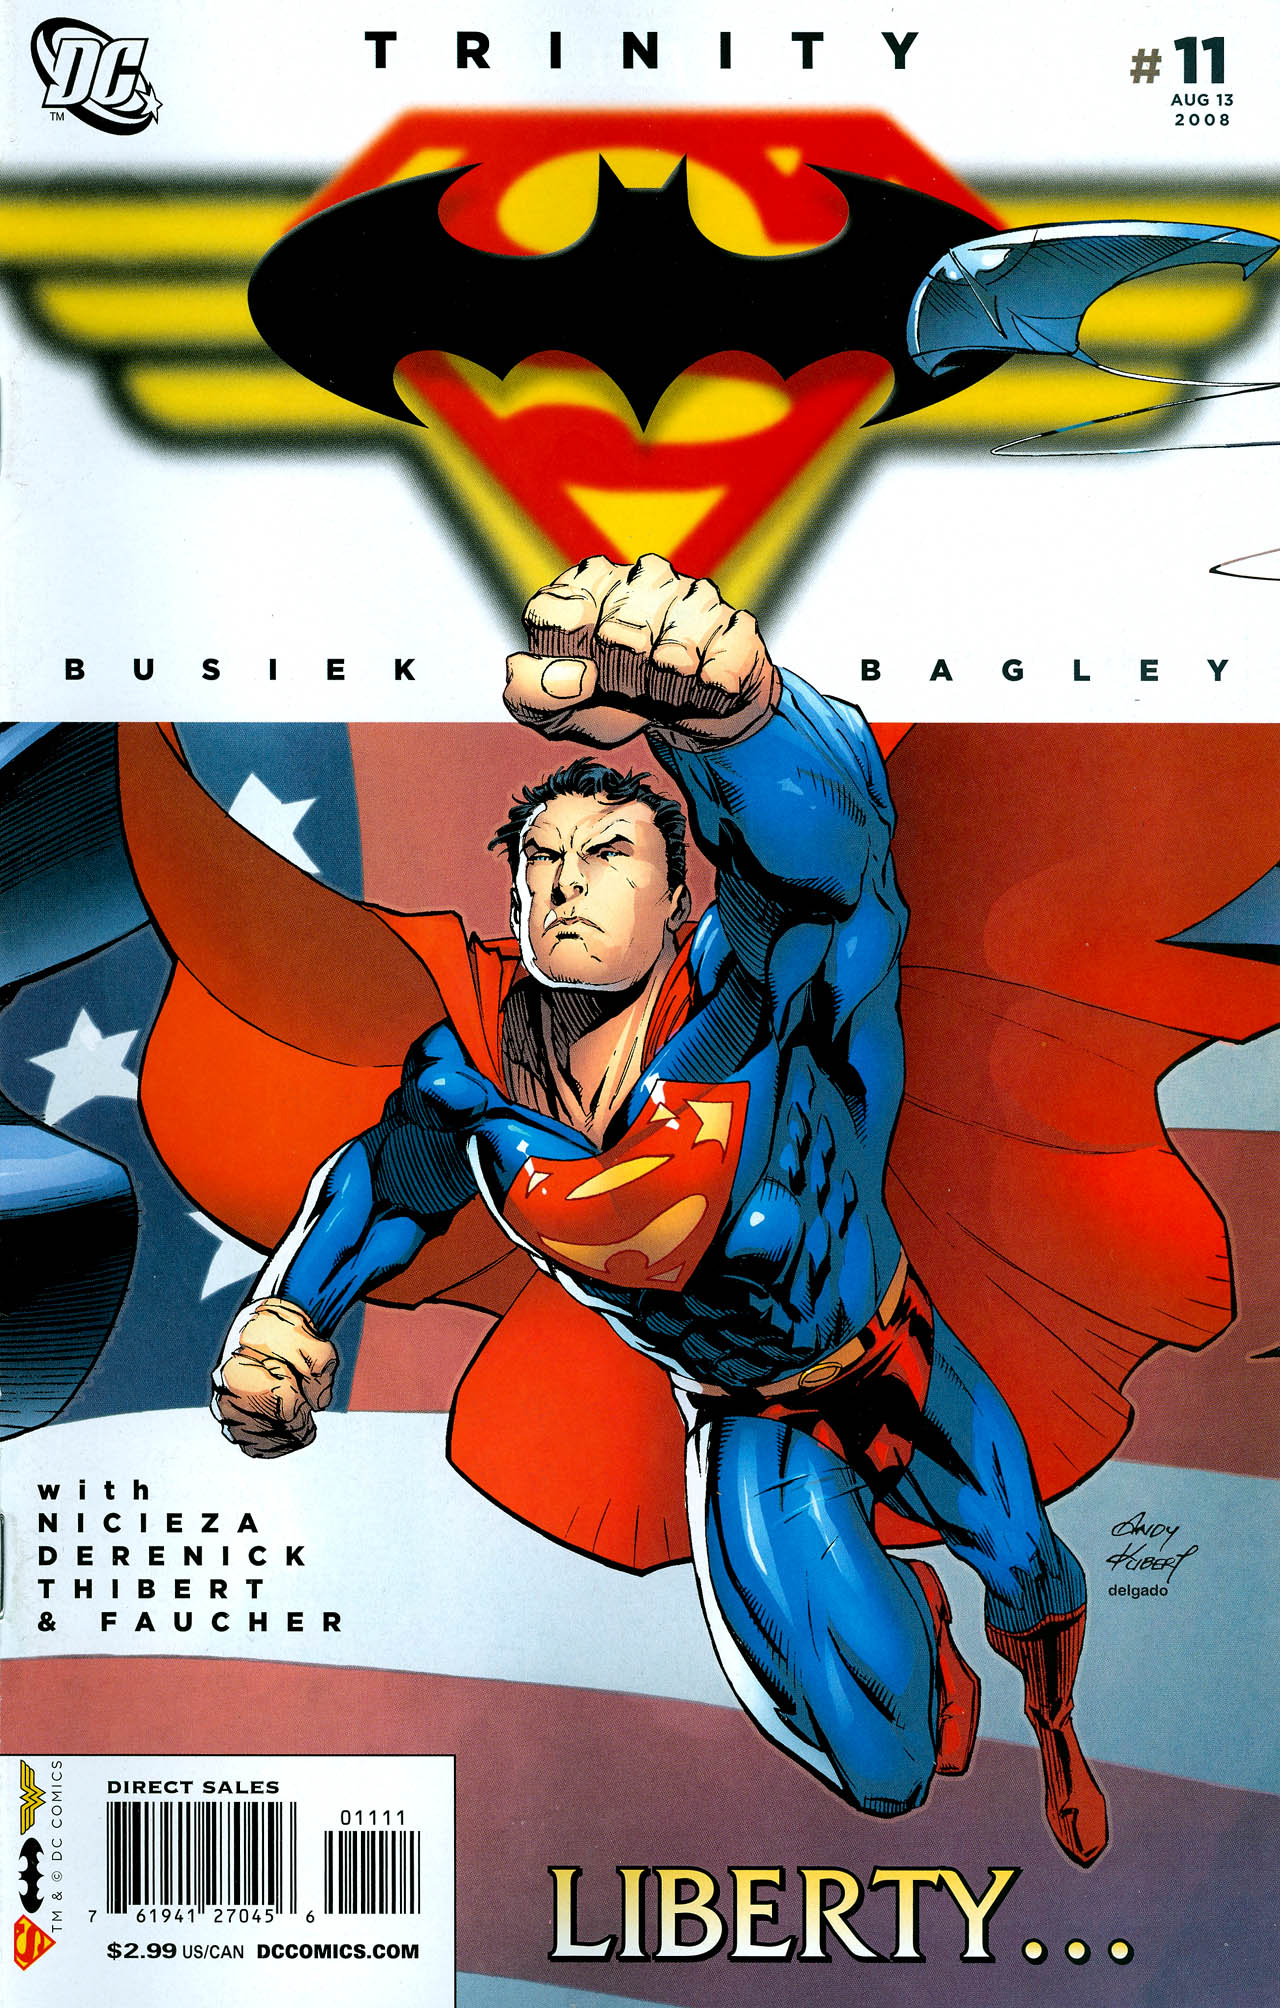 Read online Trinity (2008) comic -  Issue #11 - 1